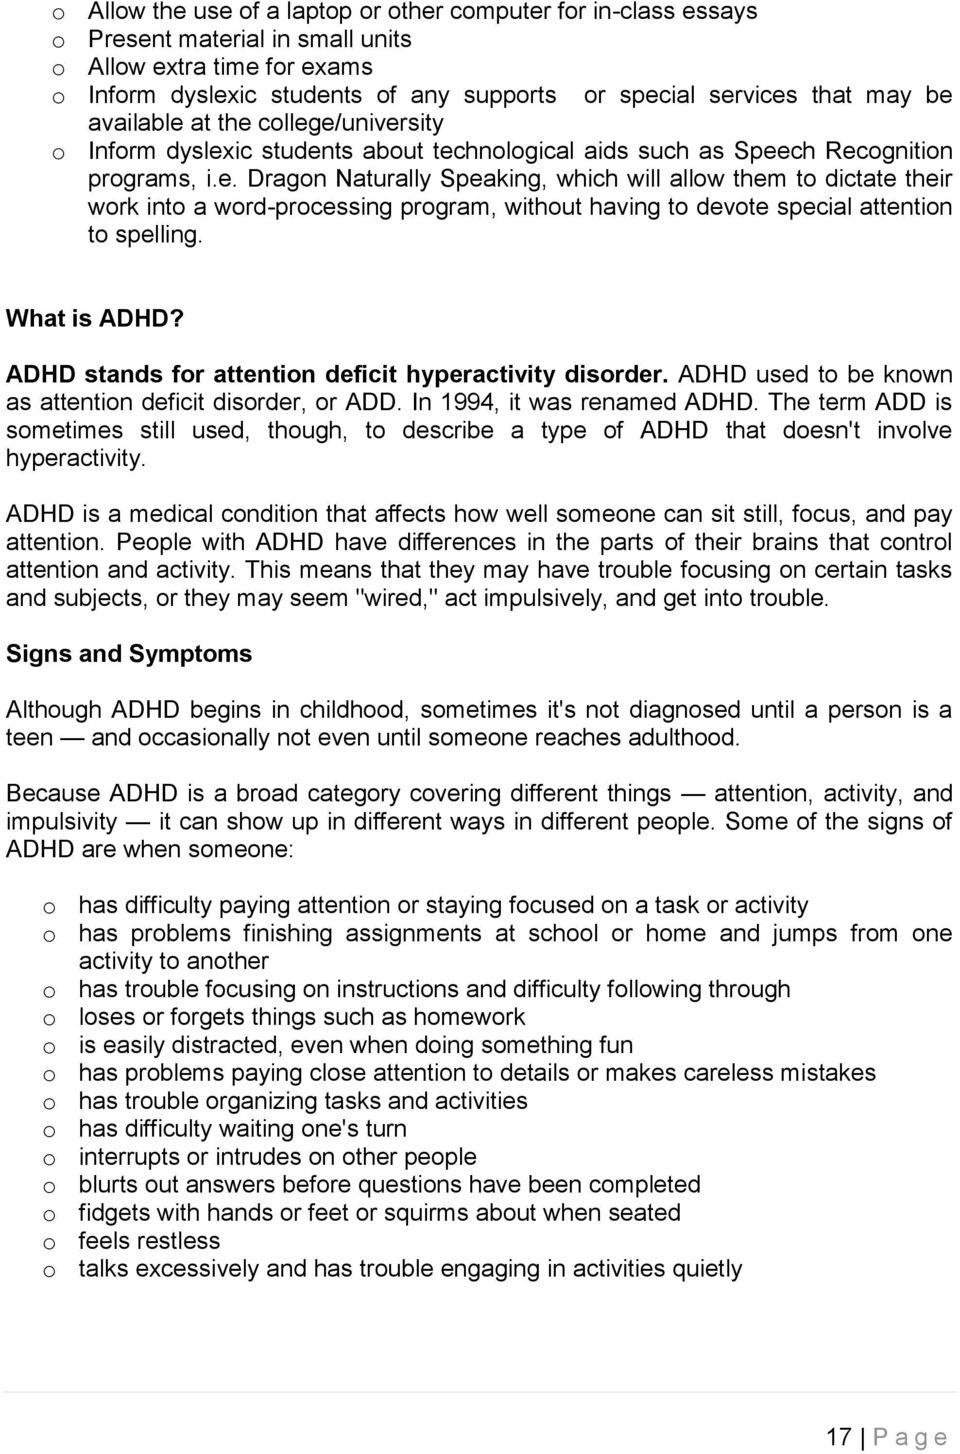 What is ADHD? ADHD stands for attention deficit hyperactivity disorder. ADHD used to be known as attention deficit disorder, or ADD. In 1994, it was renamed ADHD.